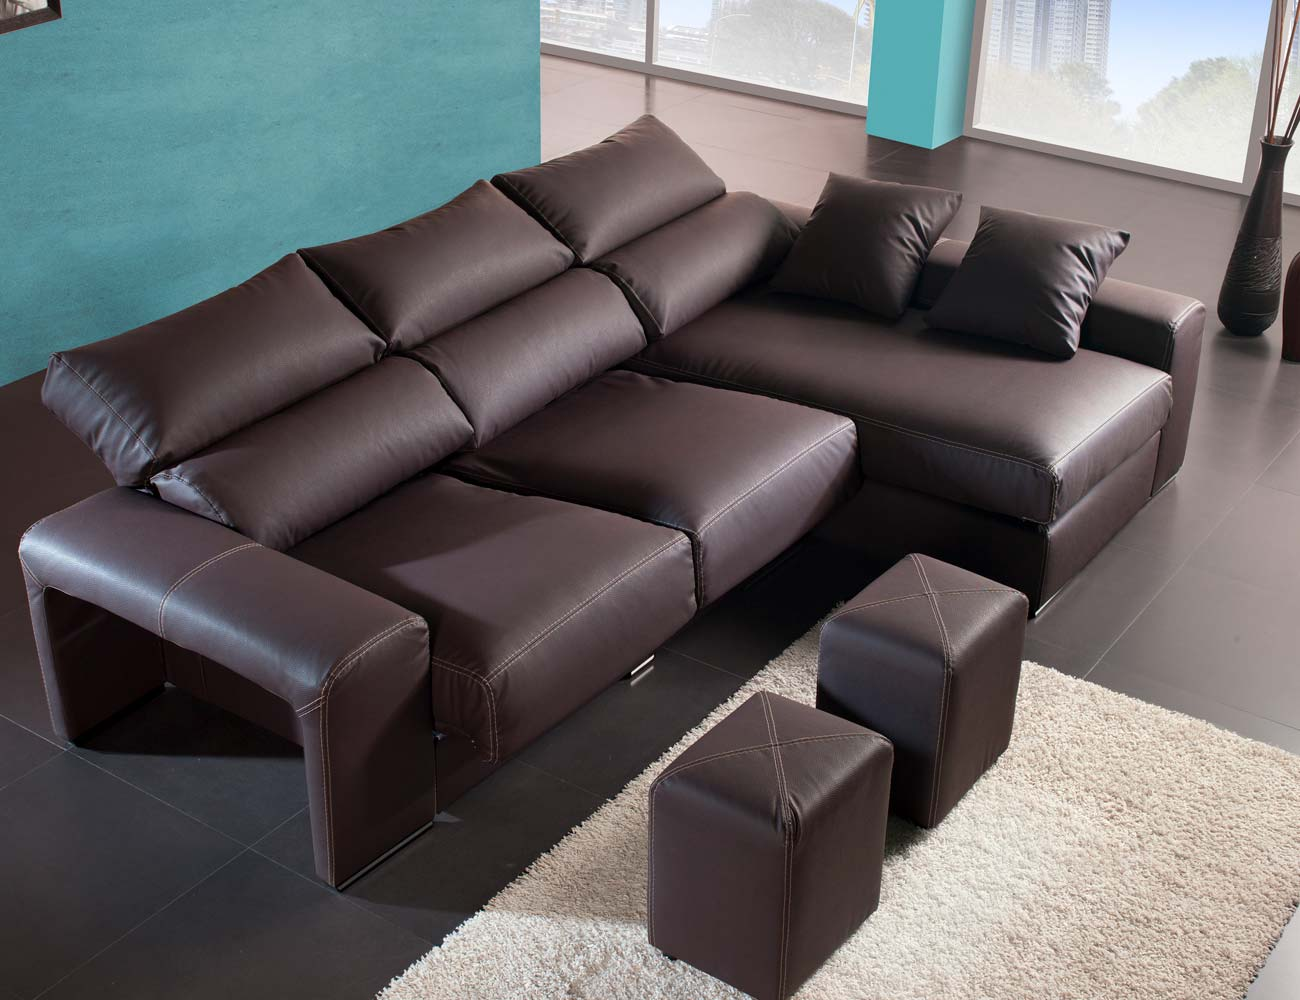 Sofa chaiselongue moderno polipiel chocolate poufs taburetes1